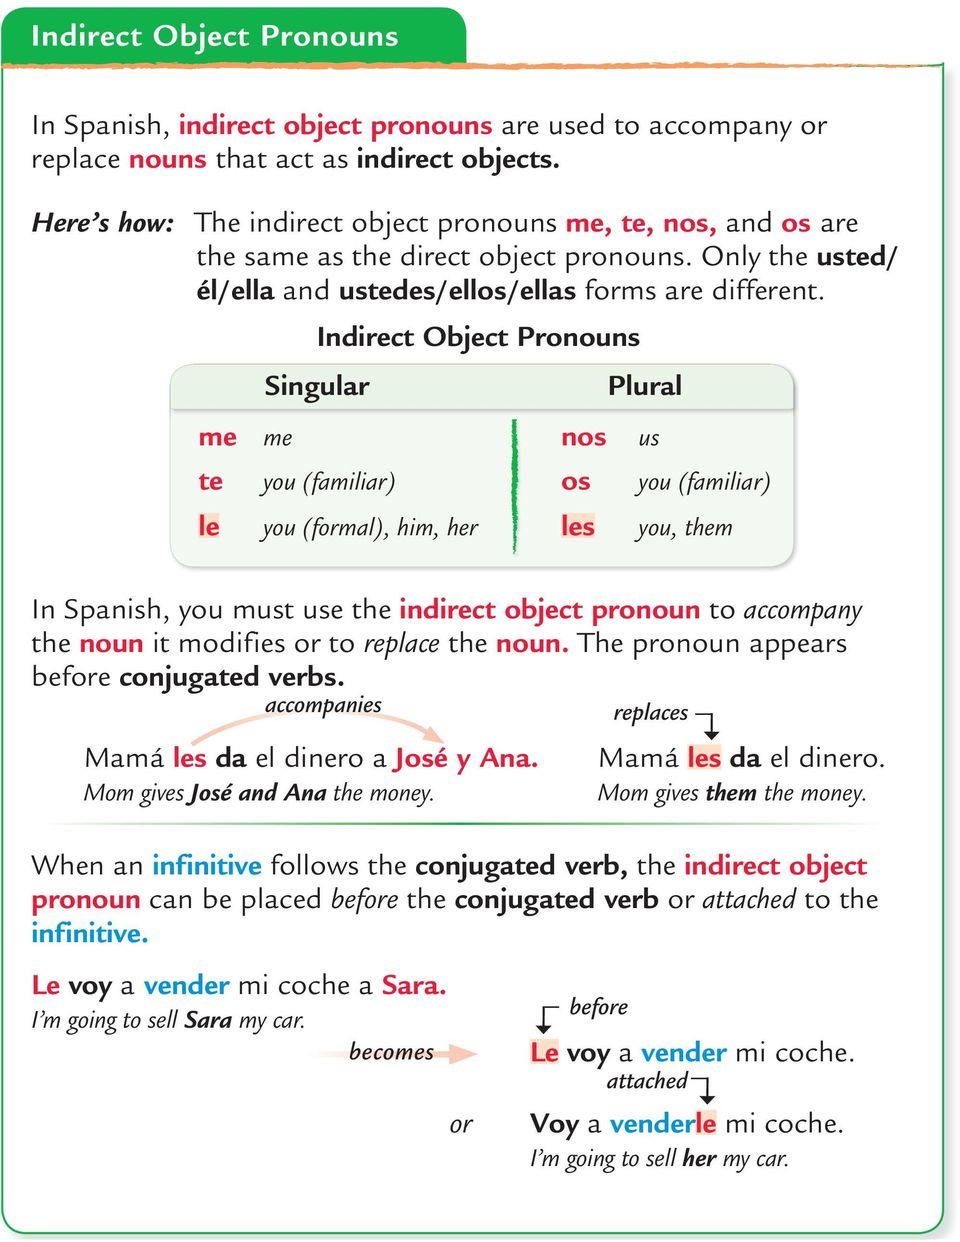 In Spanish, you must use the indirect object pronoun to accompany the noun it modifies or to replace the noun. The pronoun appears before conjugated verbs. Mamá les da el dinero a José y Ana.